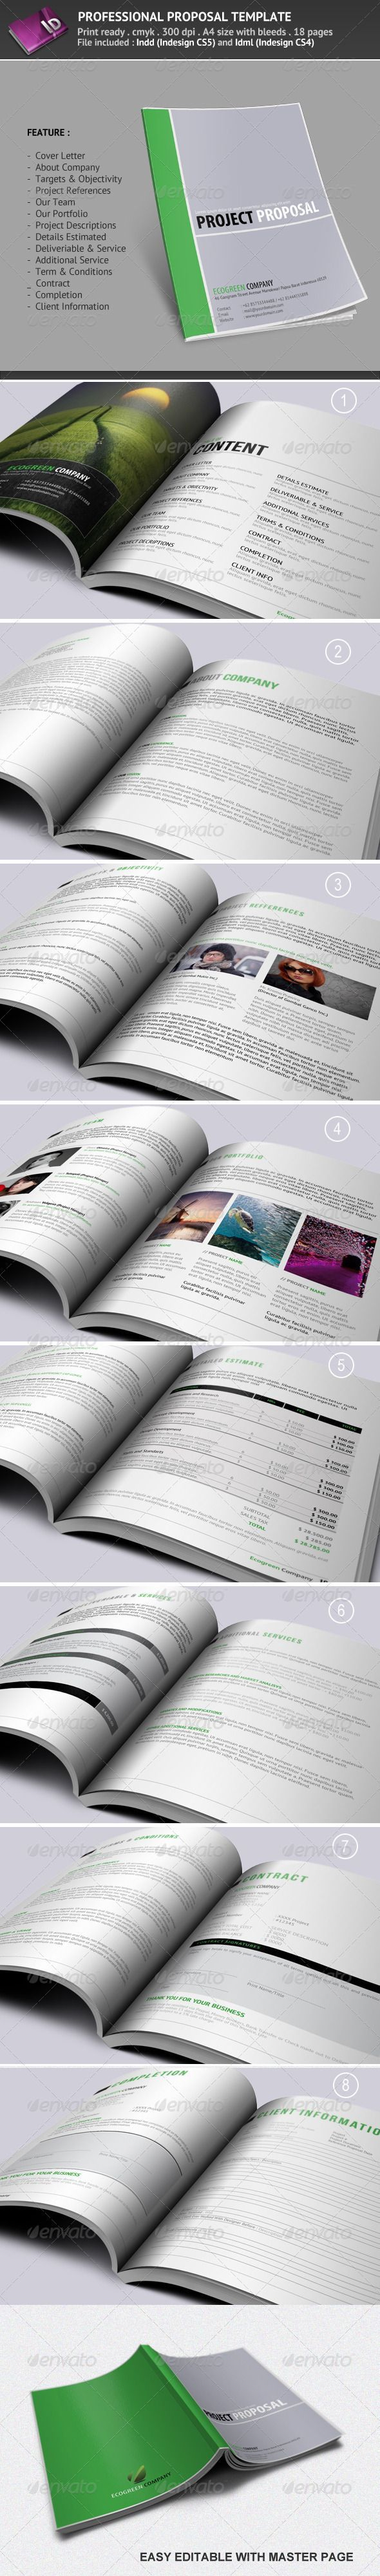 commercial proposal template 04 29 best Commercial